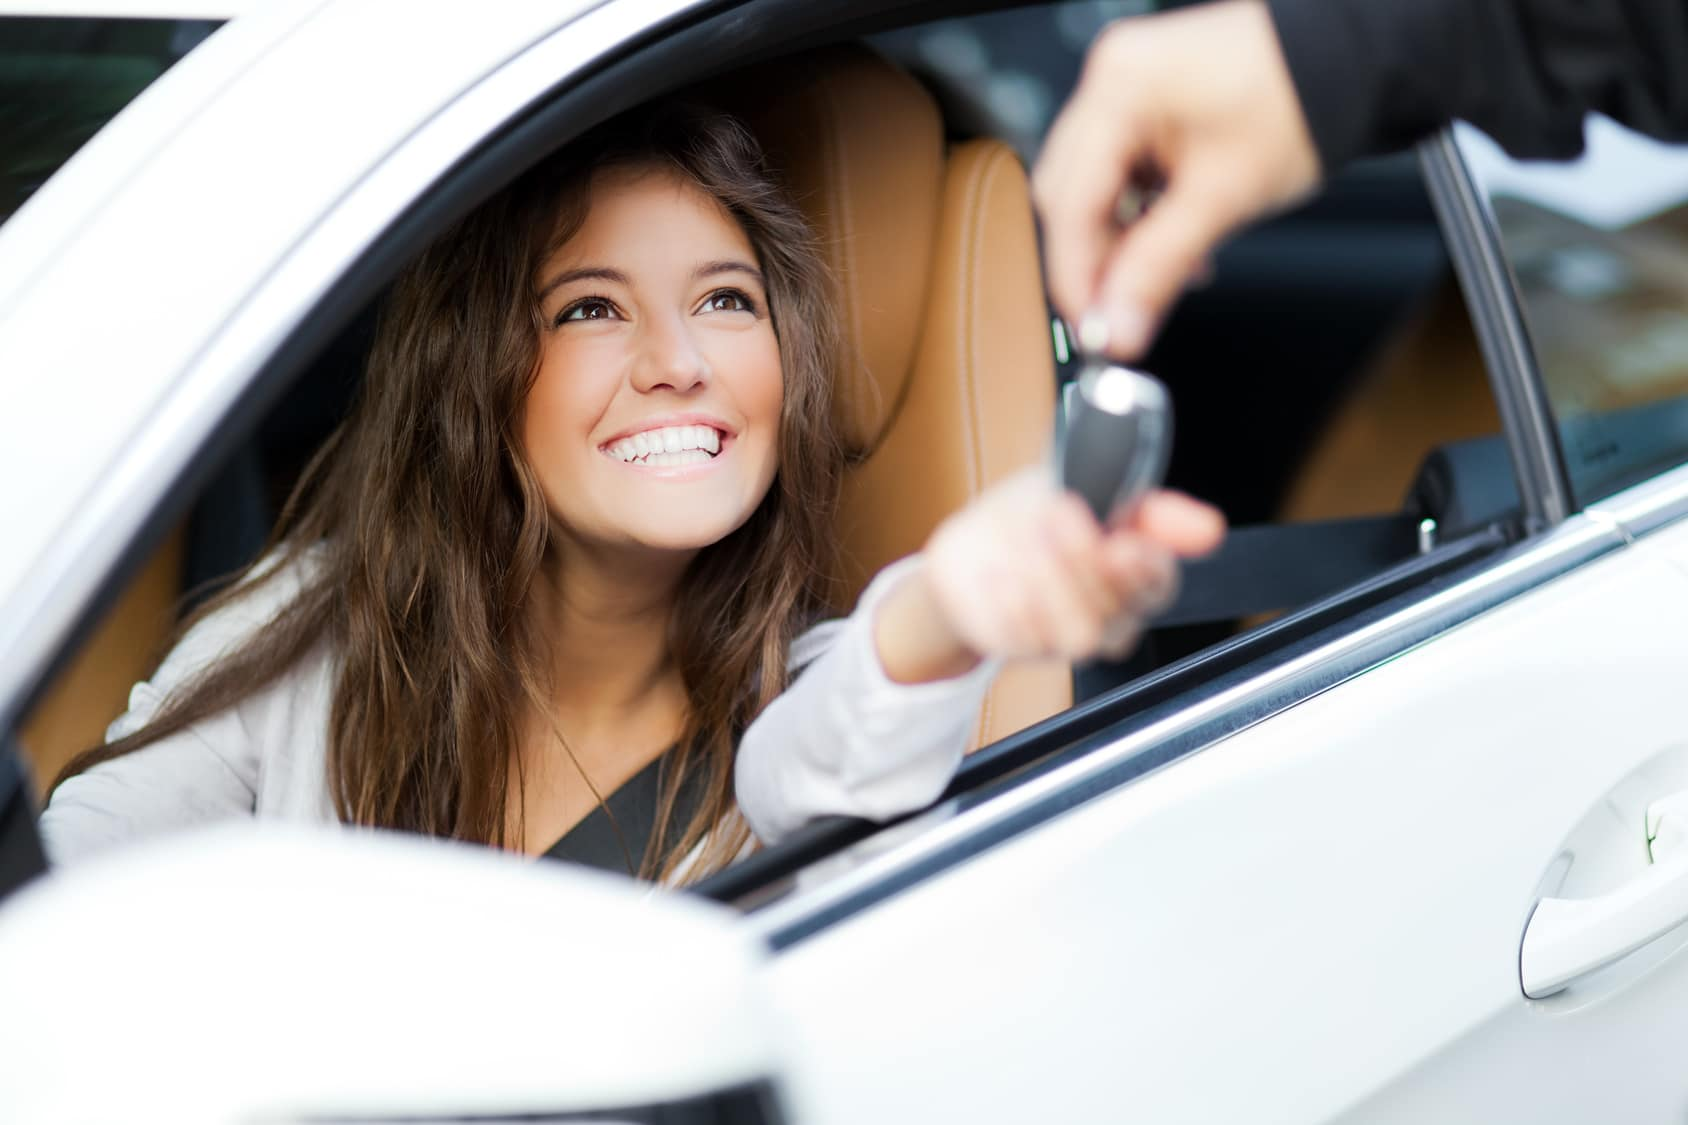 Malta Car Hire – Things to Consider